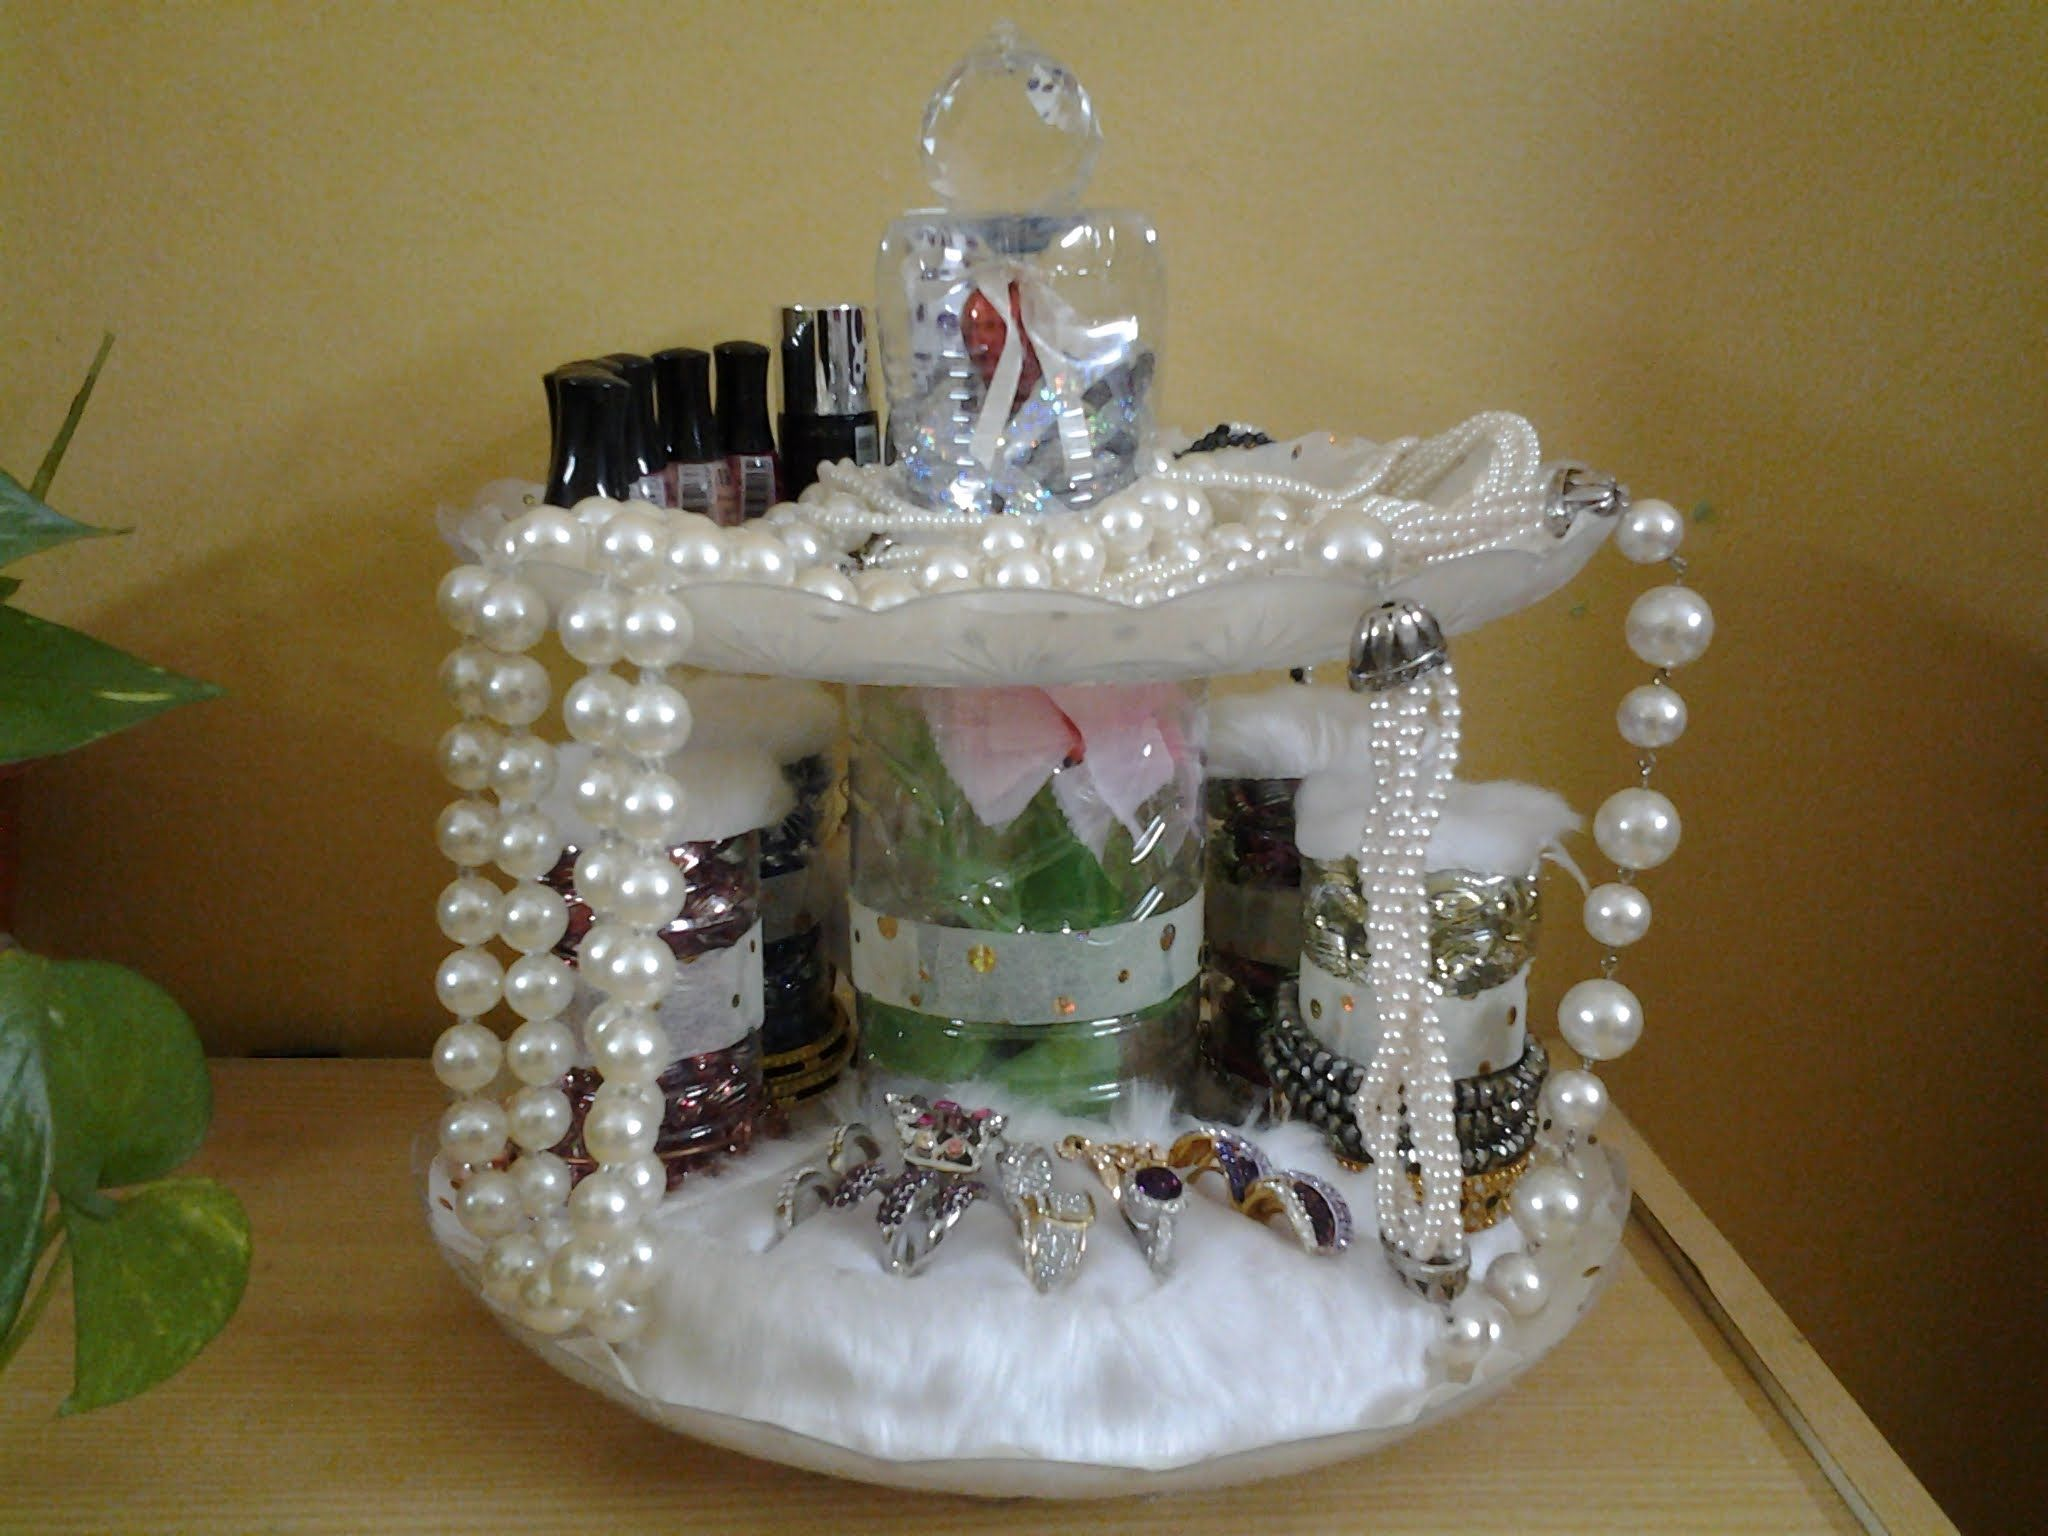 Best Out Of Waste Plastic Bottles \u0026 Plates Transformed to Jewelry Organizer & Best Out Of Waste Plastic Bottles \u0026 Plates Transformed to Jewelry ...